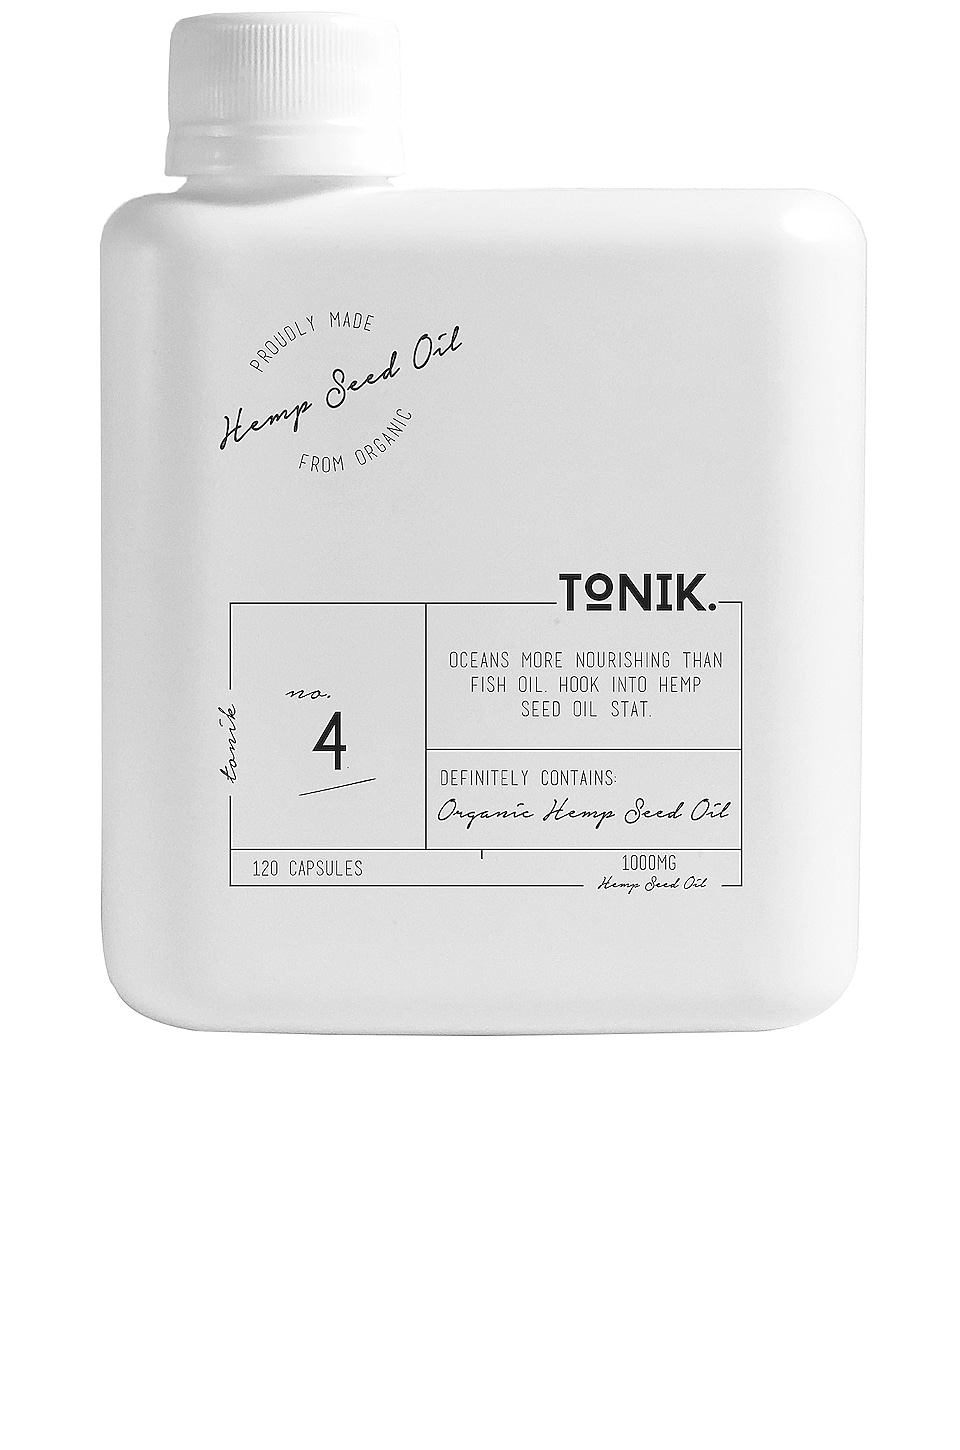 TONIK No.4 Organic Hemp Seed Oil Capsules